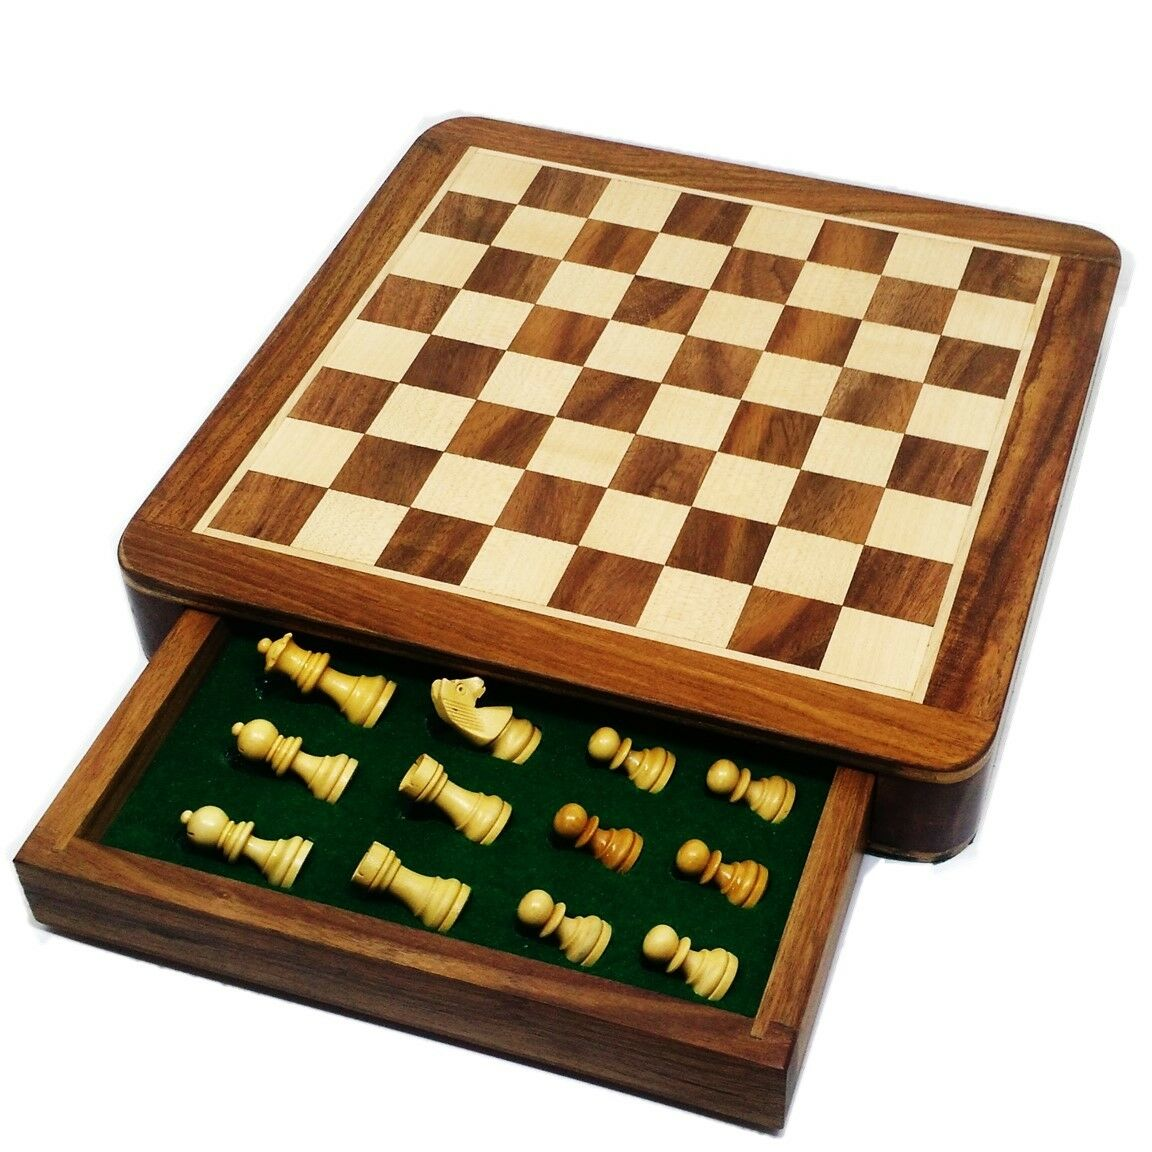 Large 10 inch Travel Chess set with Drawer - Magnetic Set - oroen Rose wood